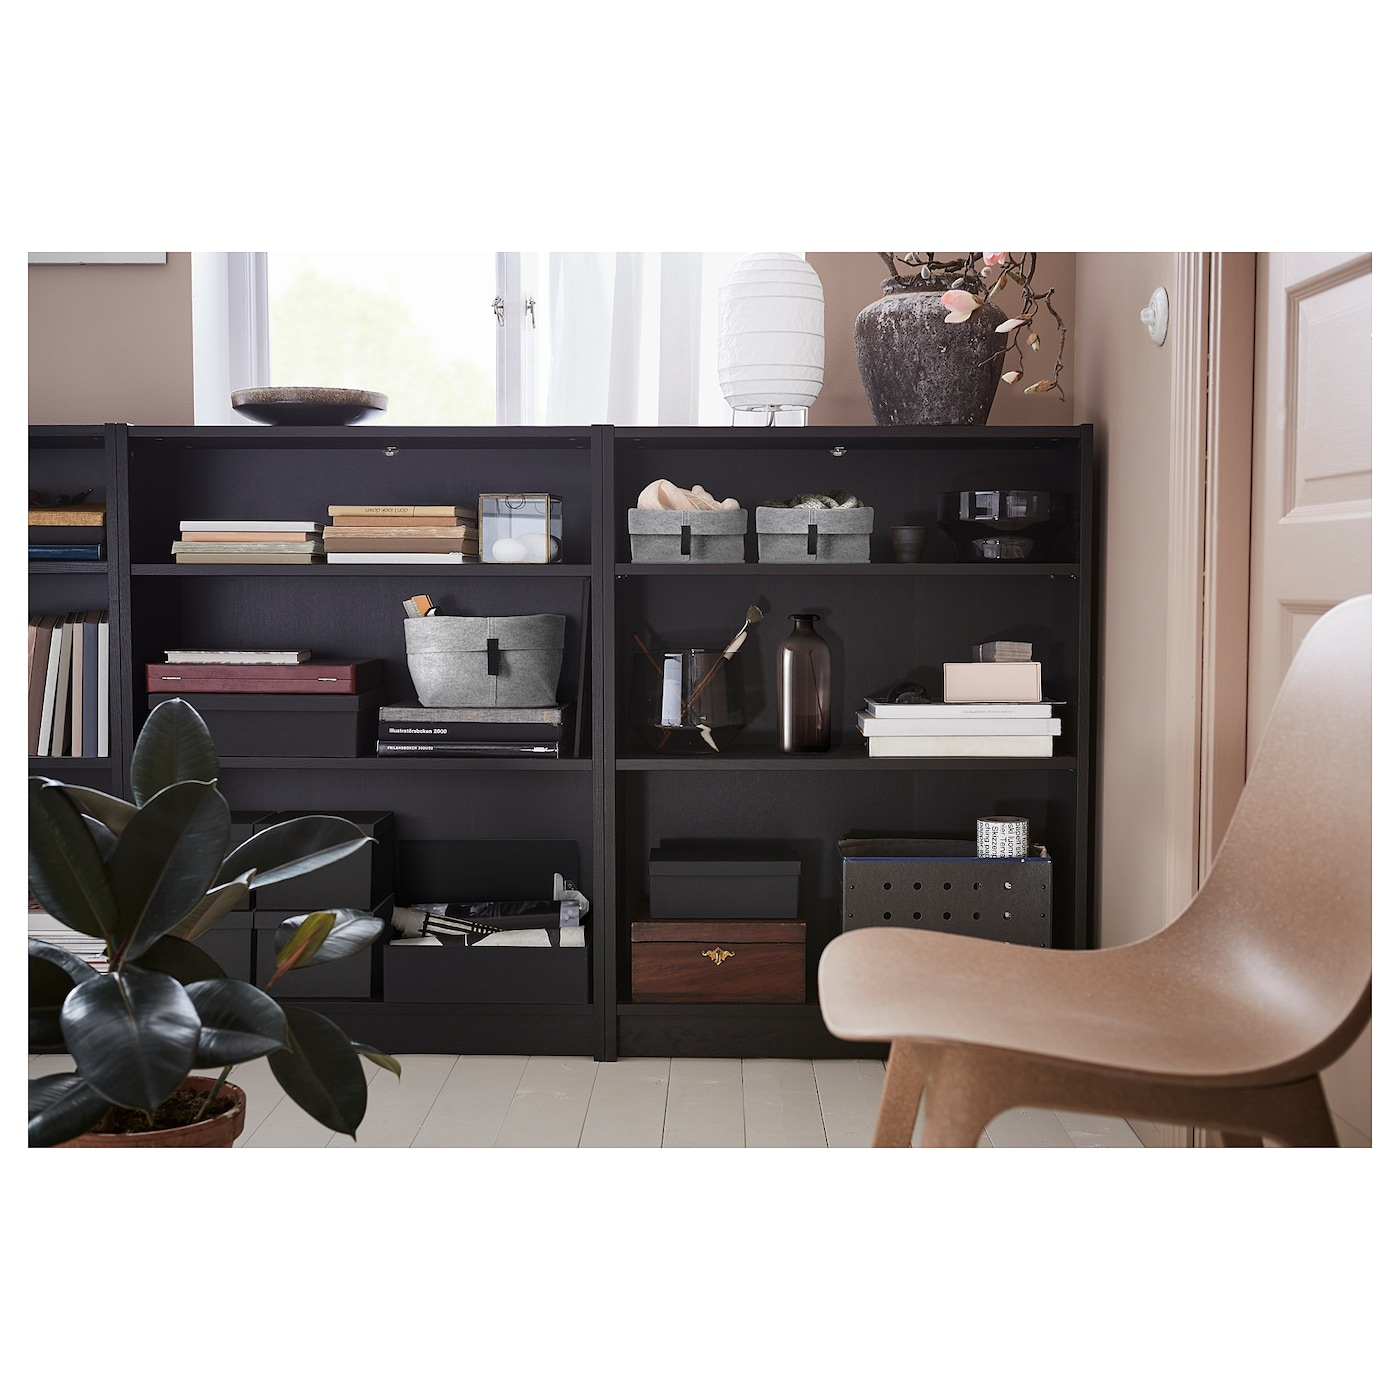 IKEA BILLY bookcase Adjustable shelves; adapt space between shelves according to your needs.